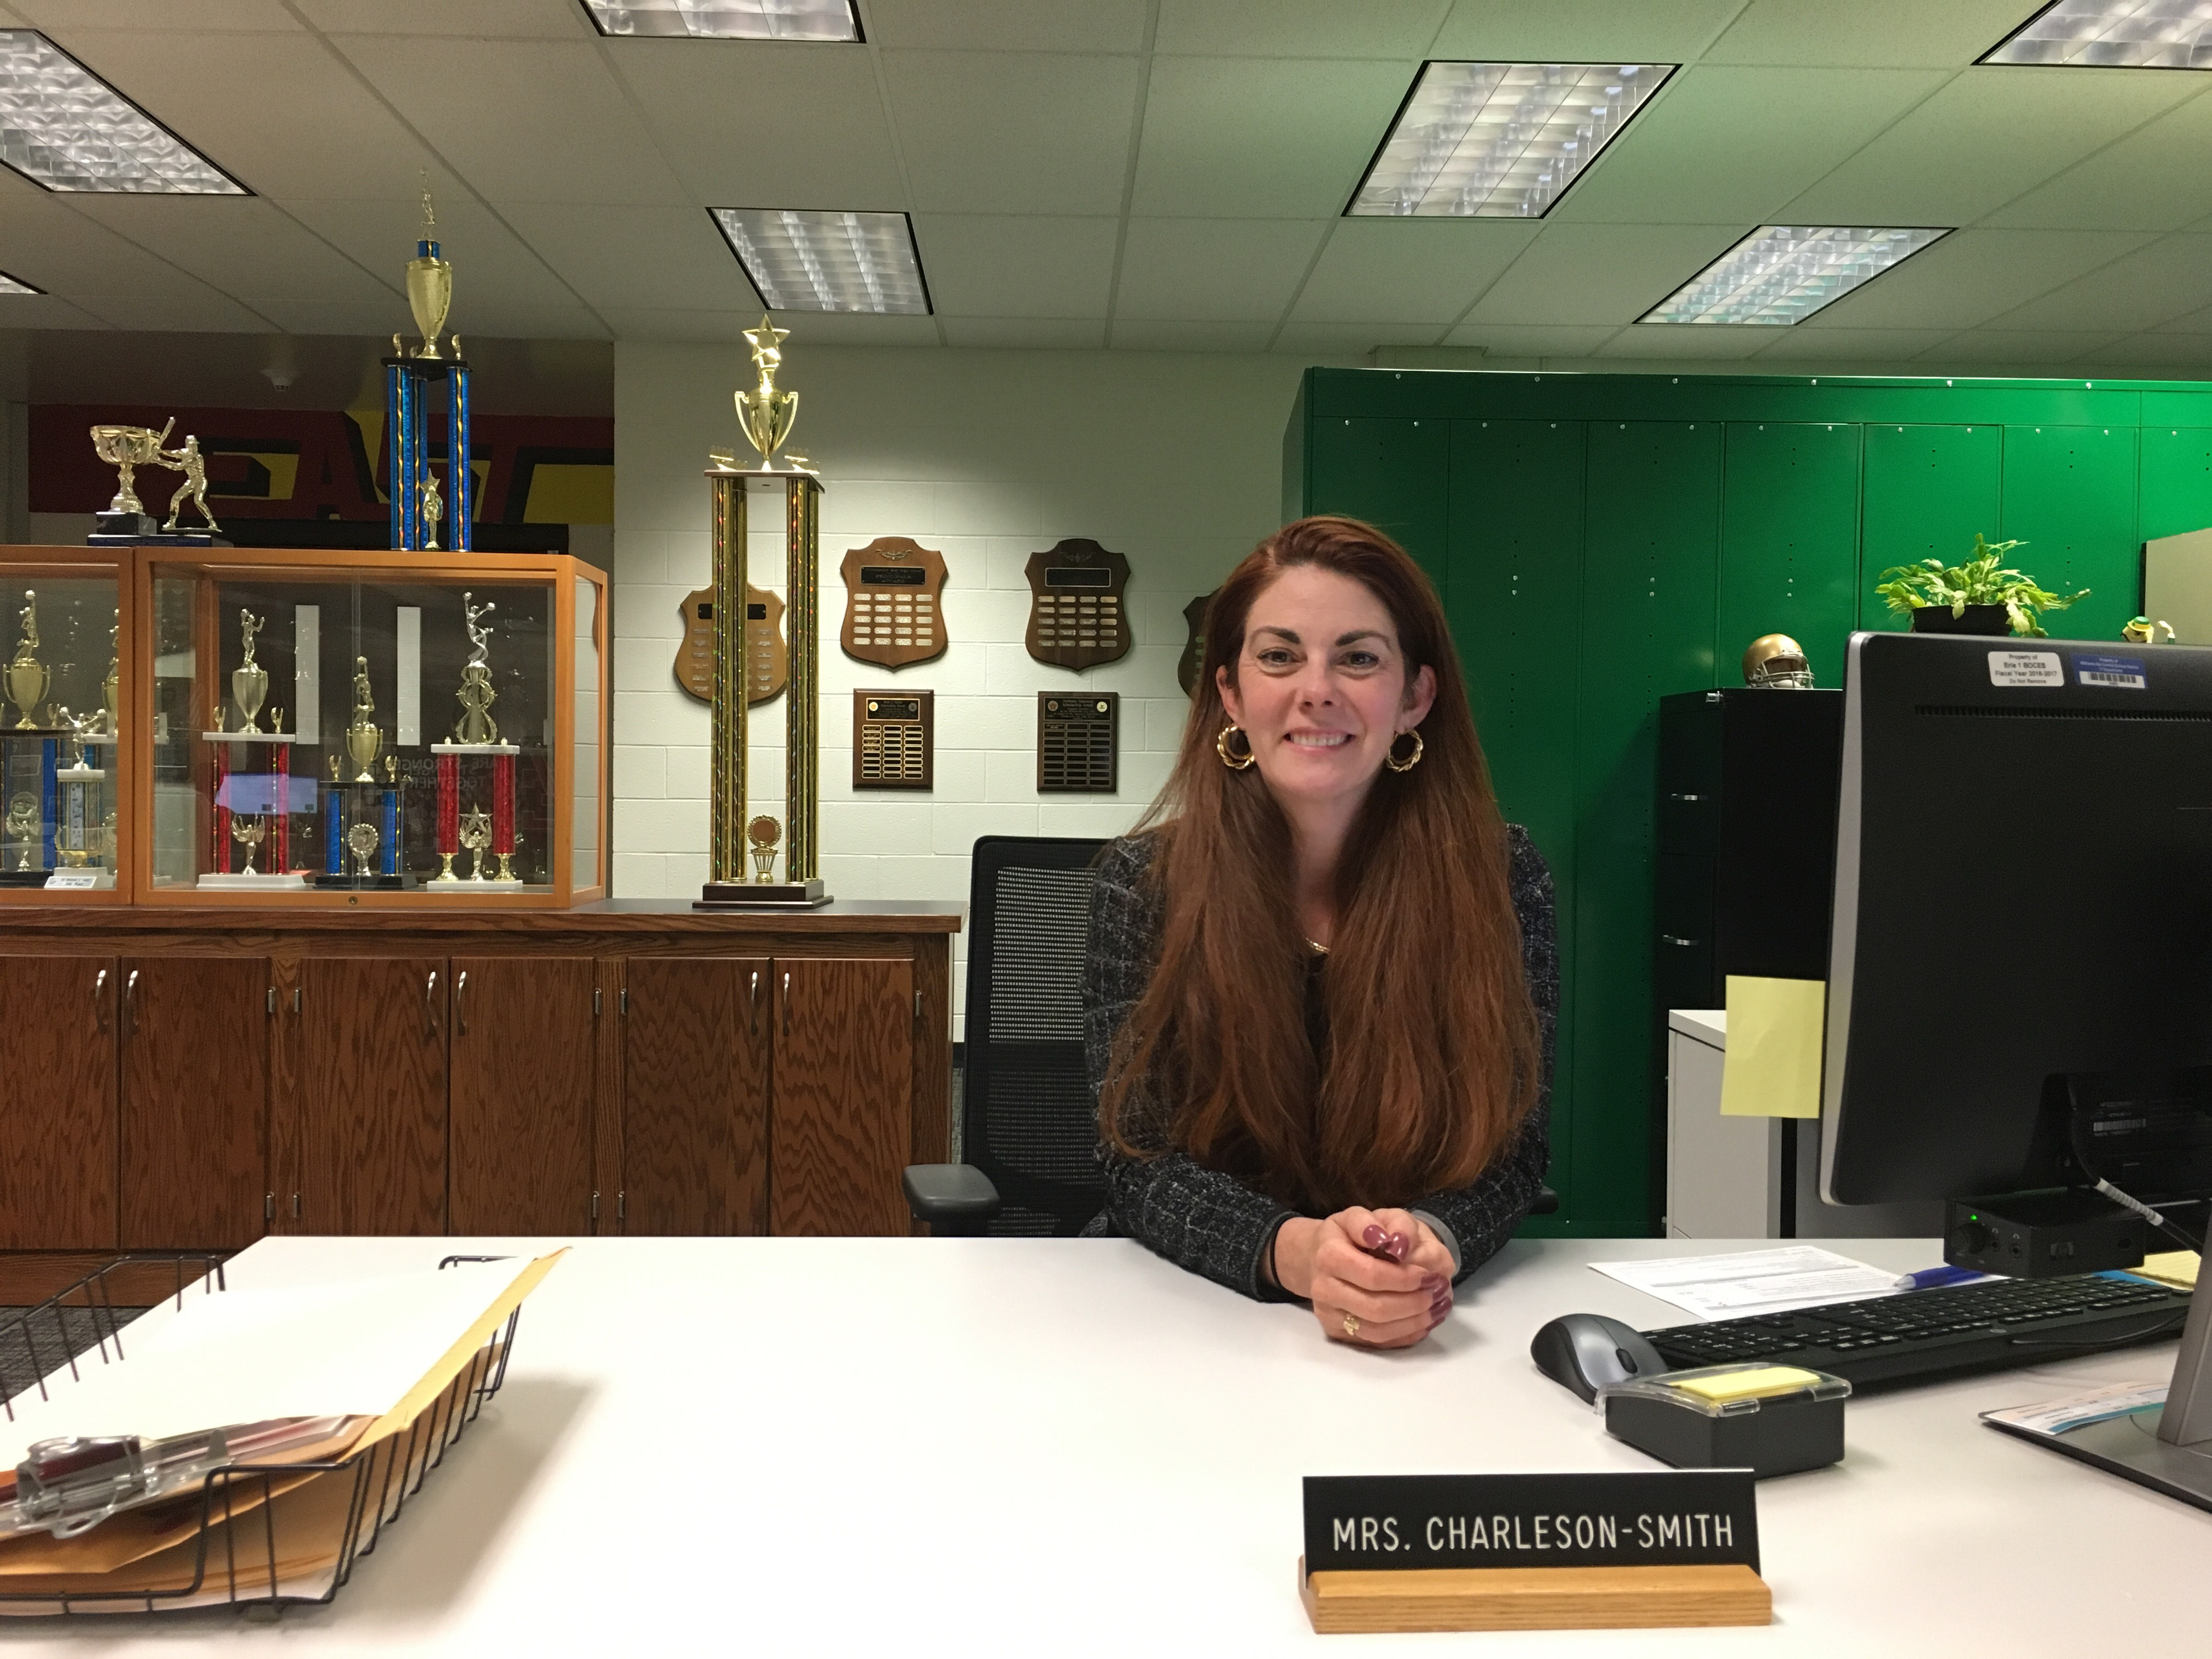 A few minutes with Mrs. Charleson-Smith